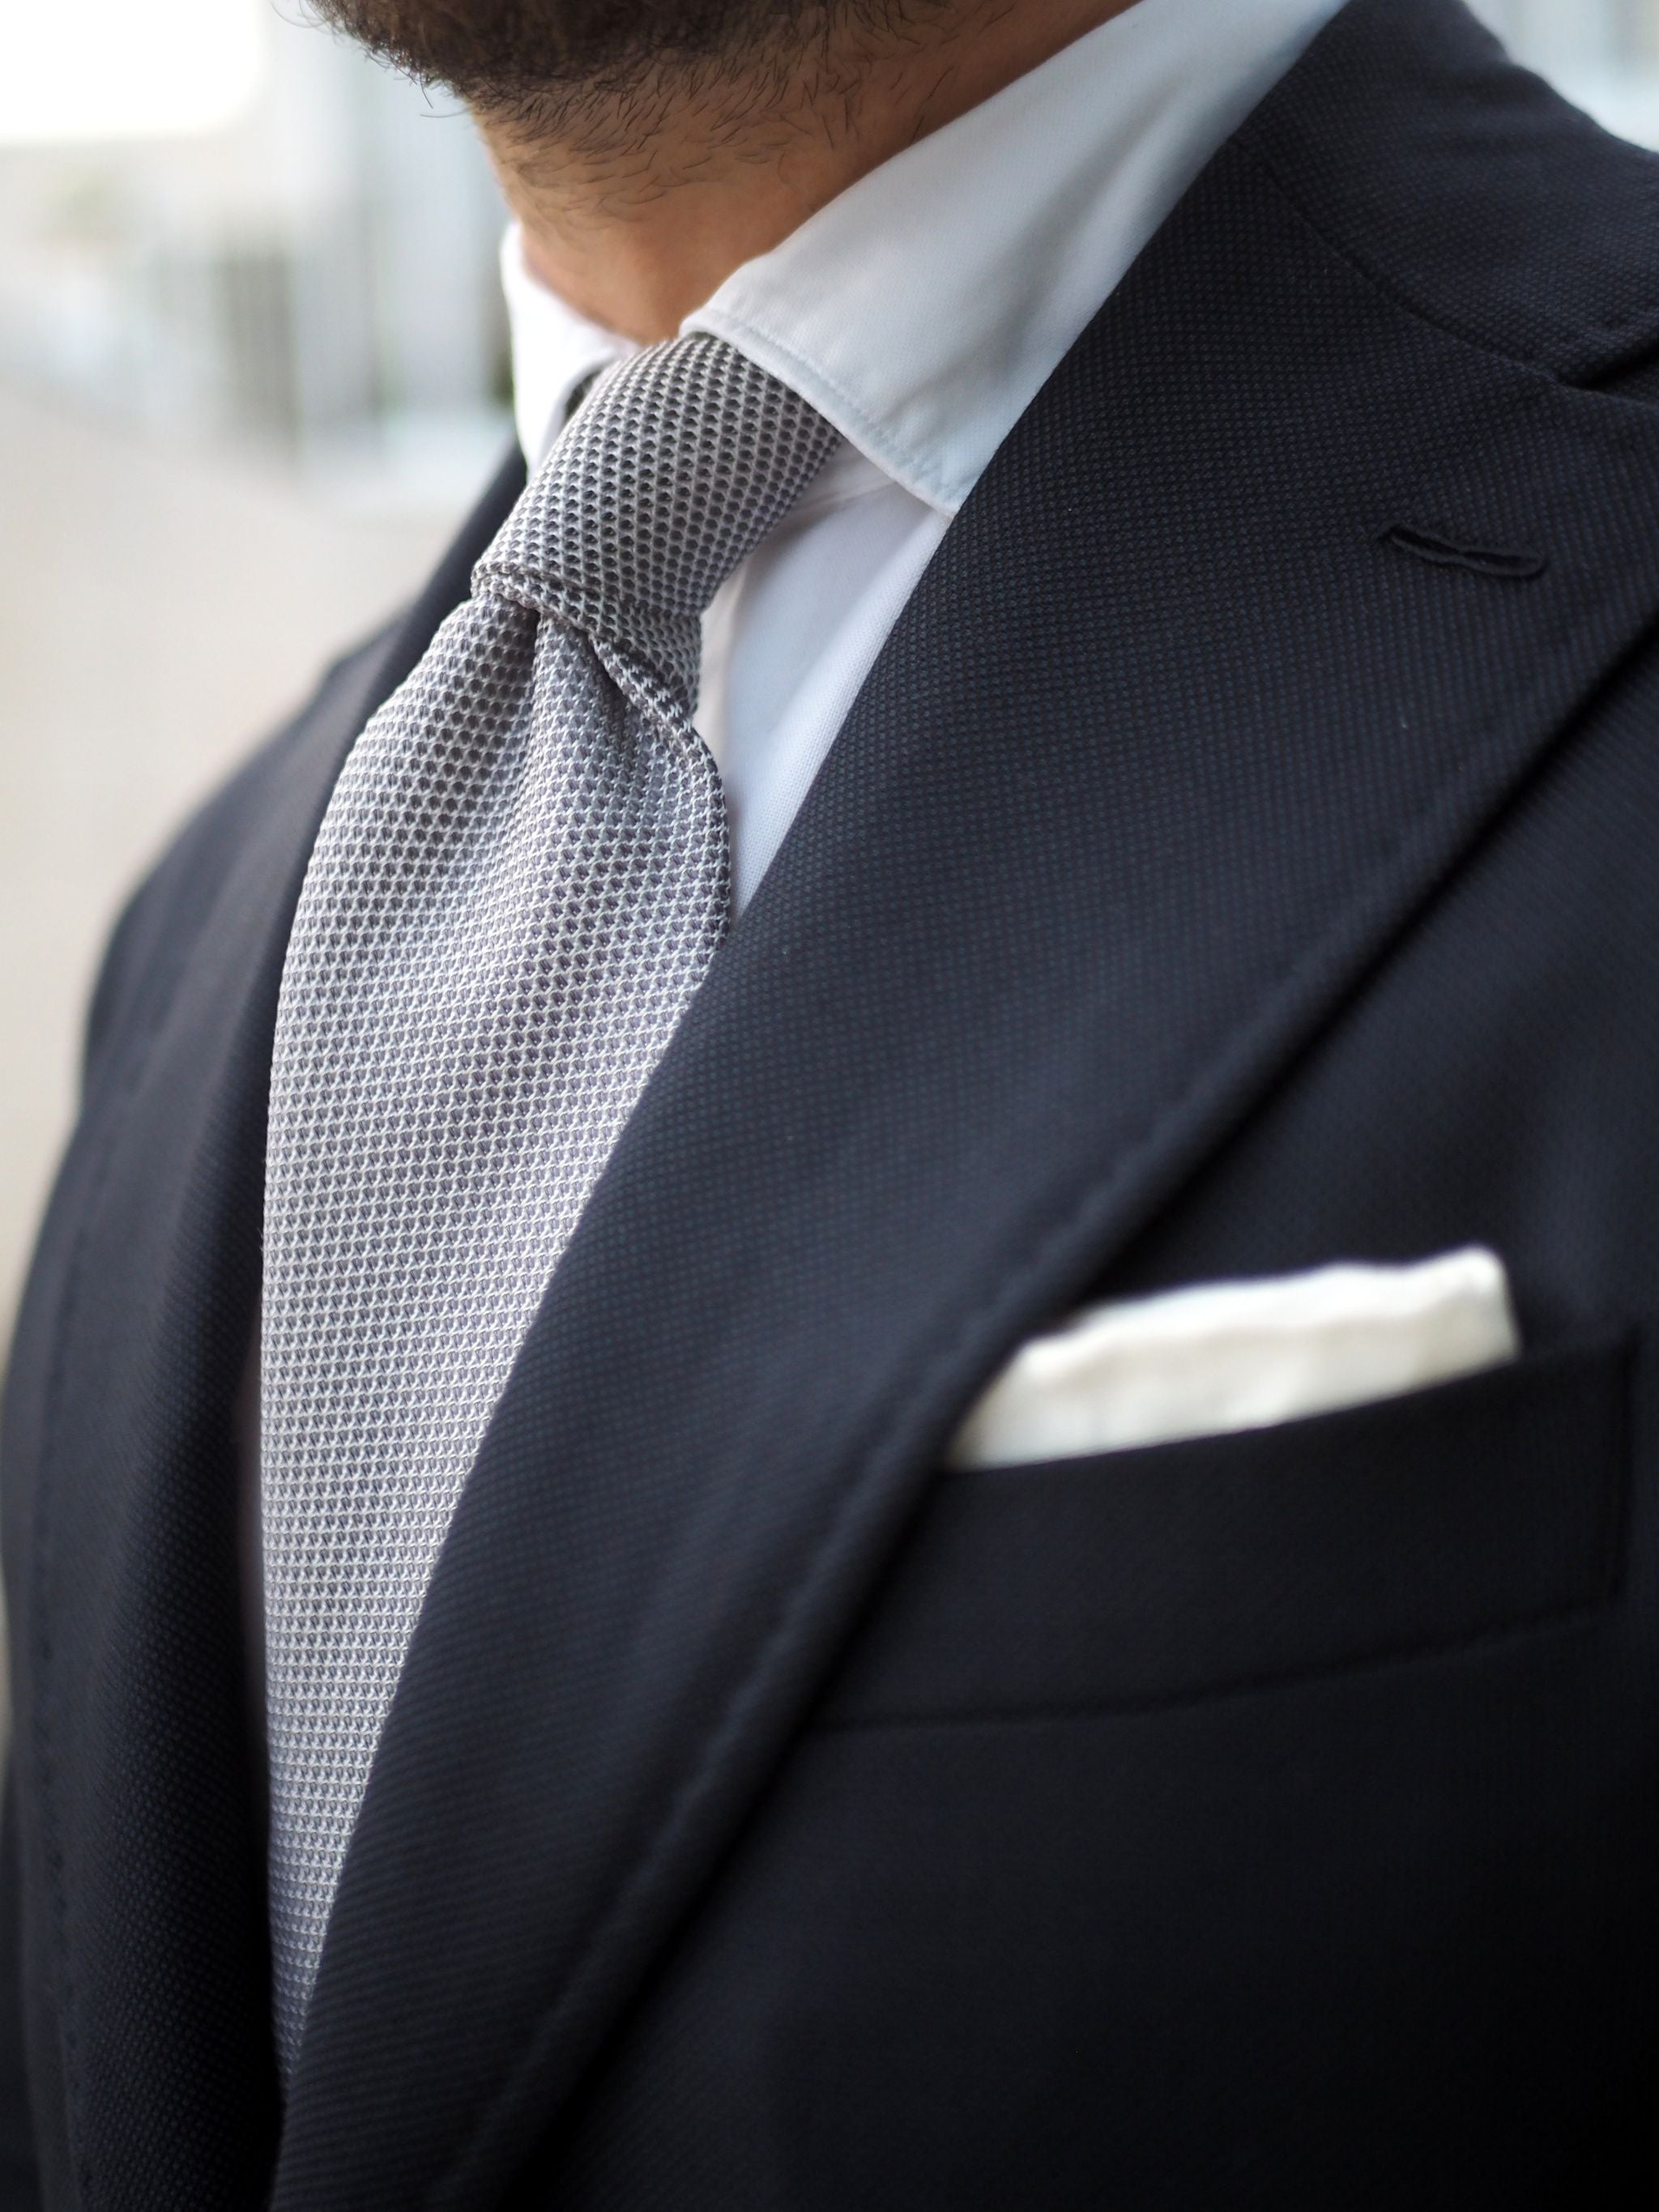 What to wear for wedding party - silver grenadine tie with double four-in-hand knot